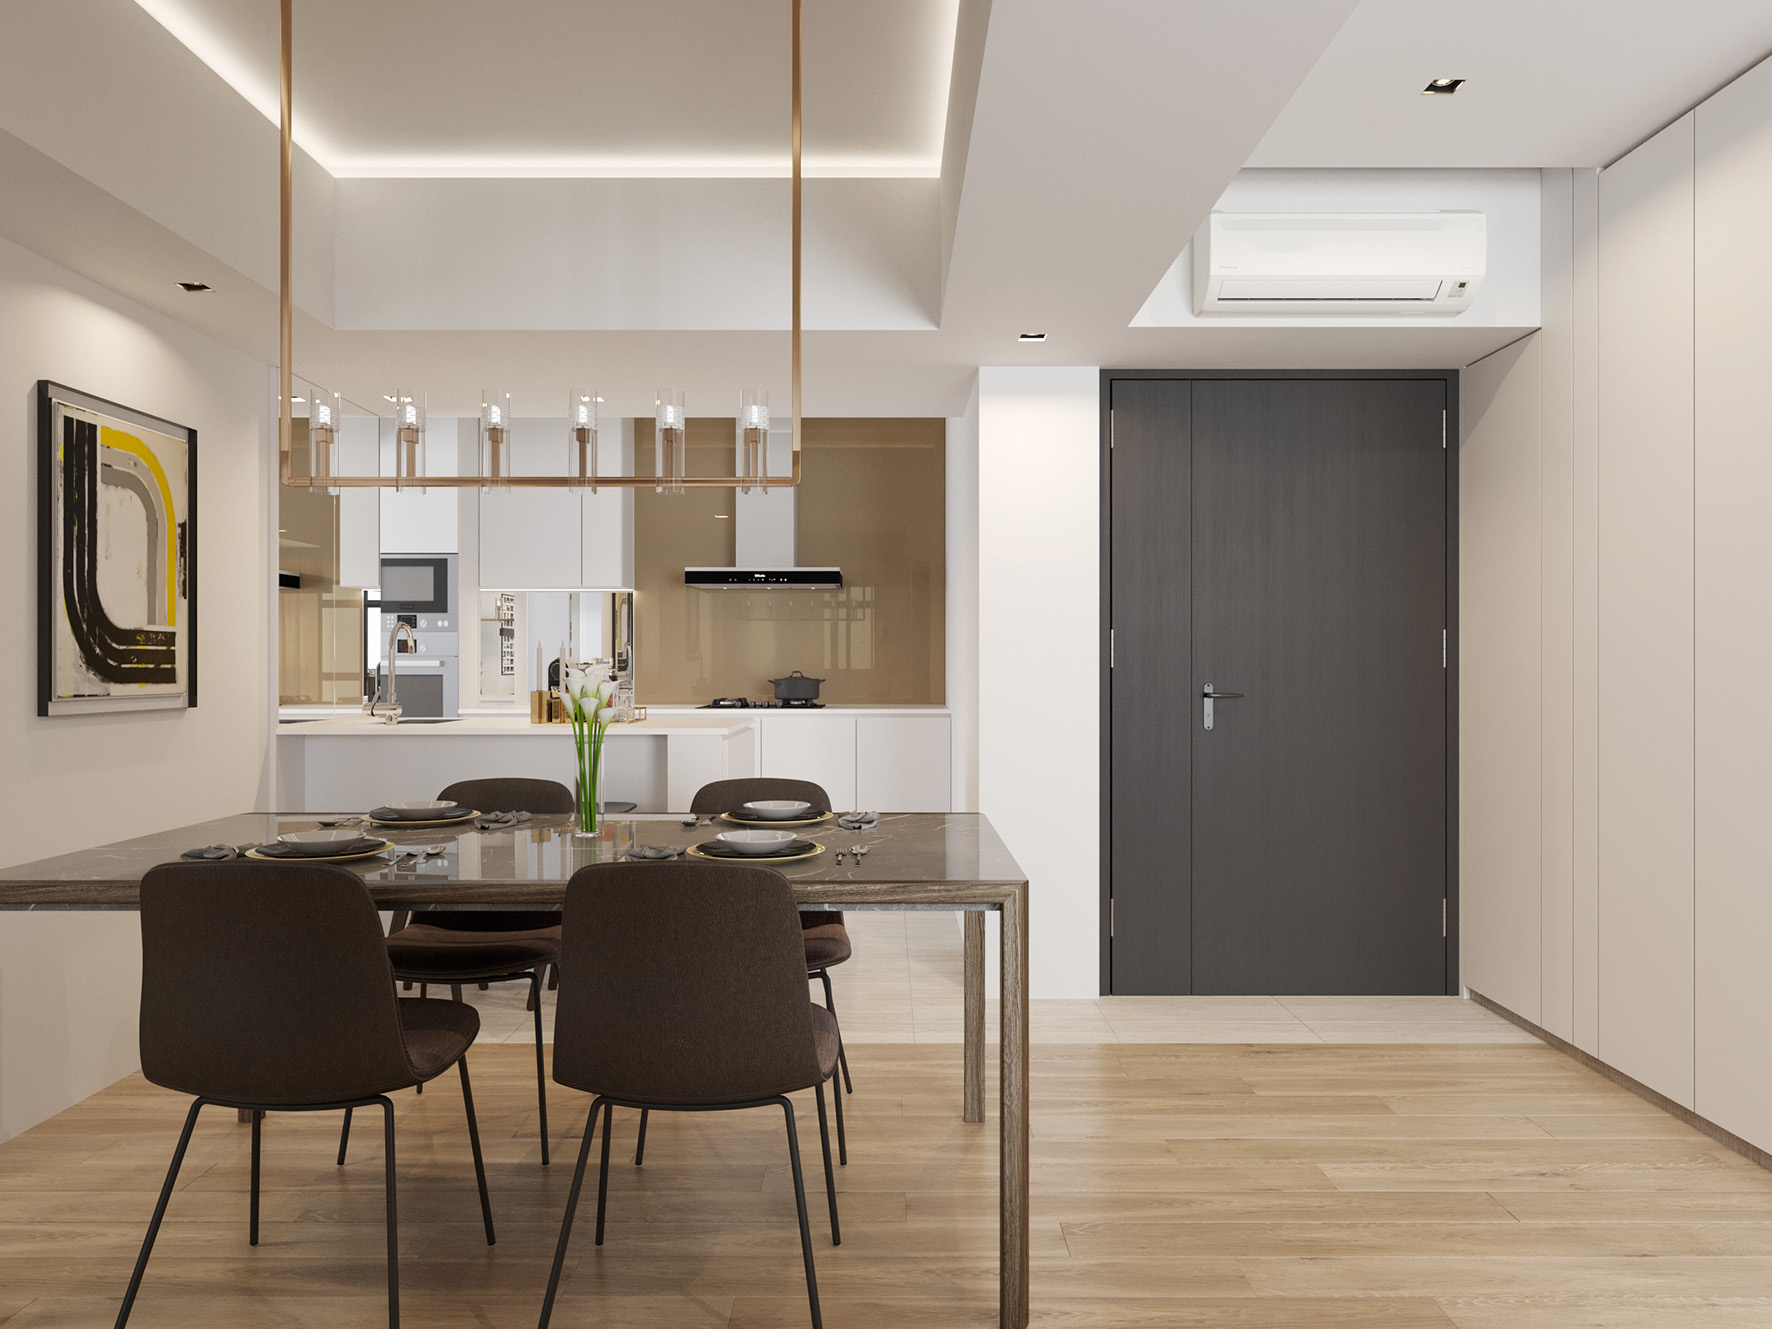 04 Dining to Kitchen